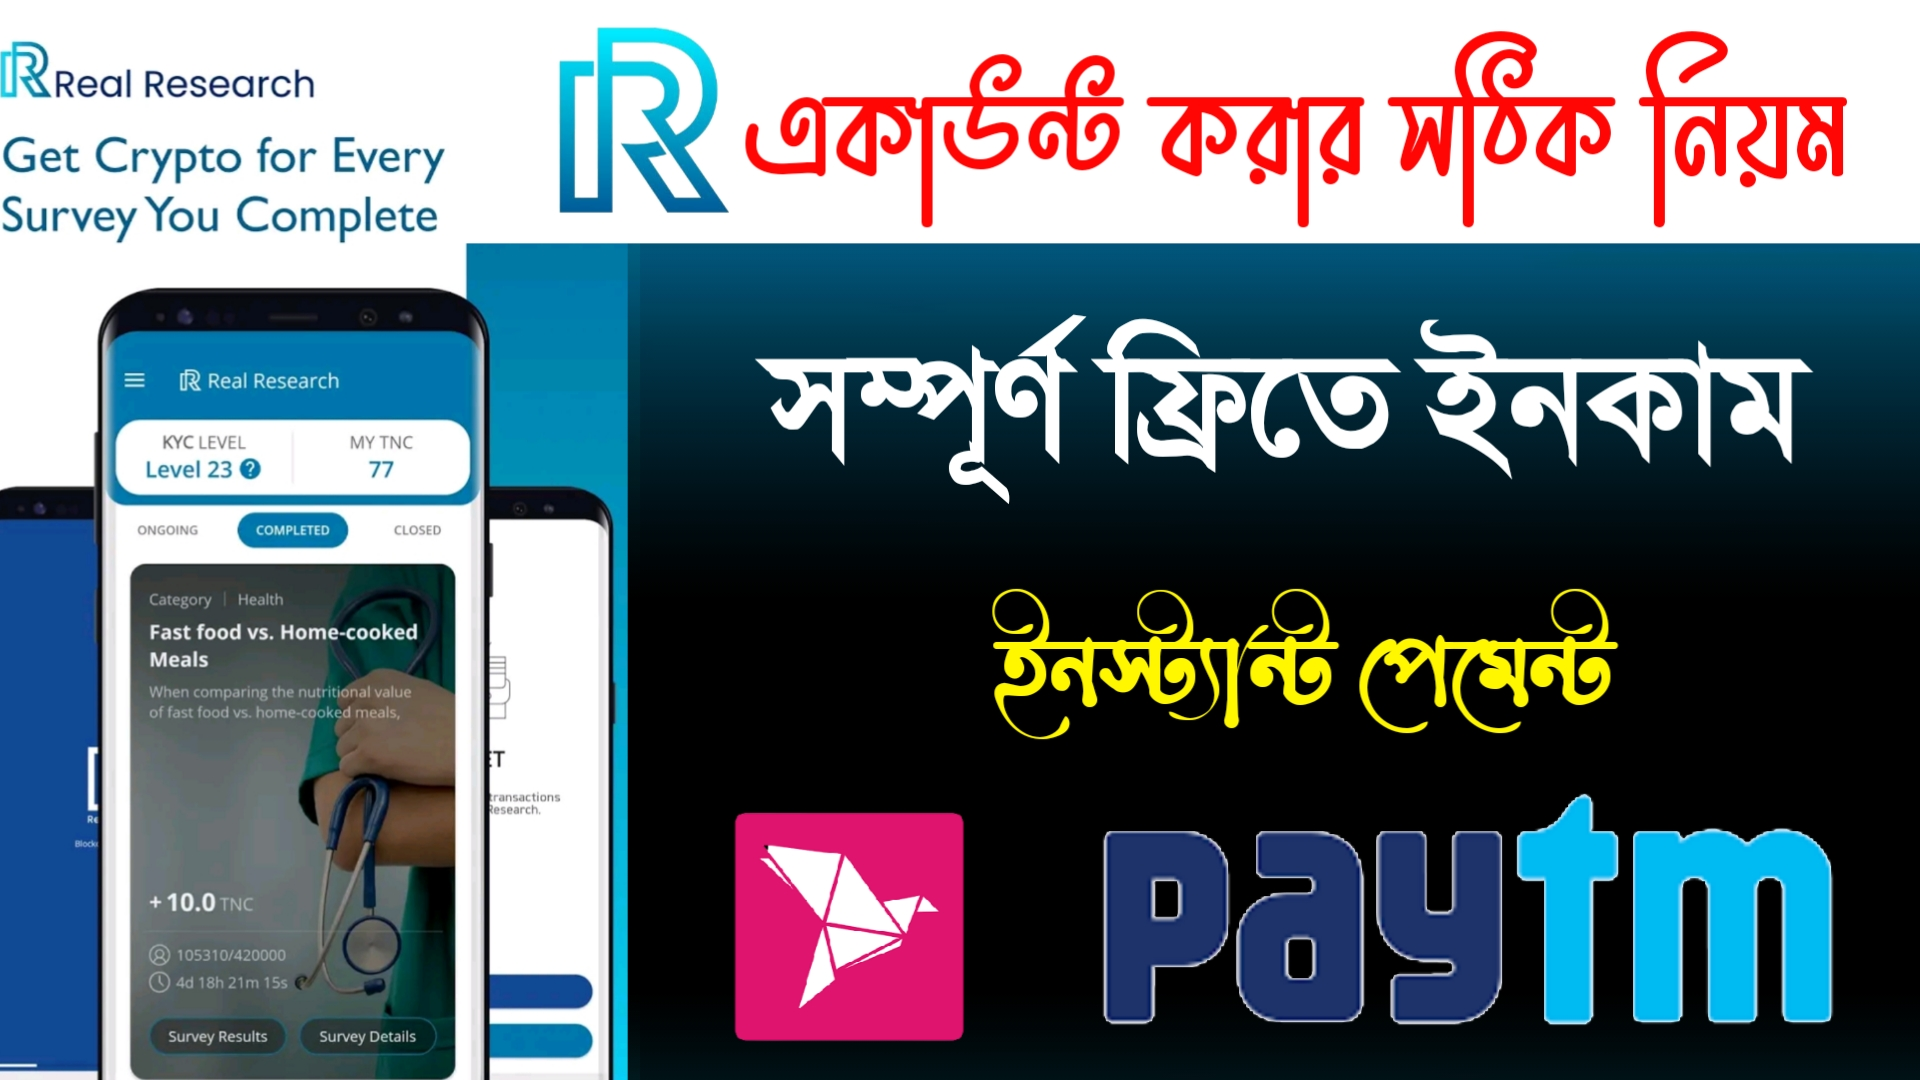 How To Create Real Research Survey App Account !! Earn Daily $100 !! Real Research New Update